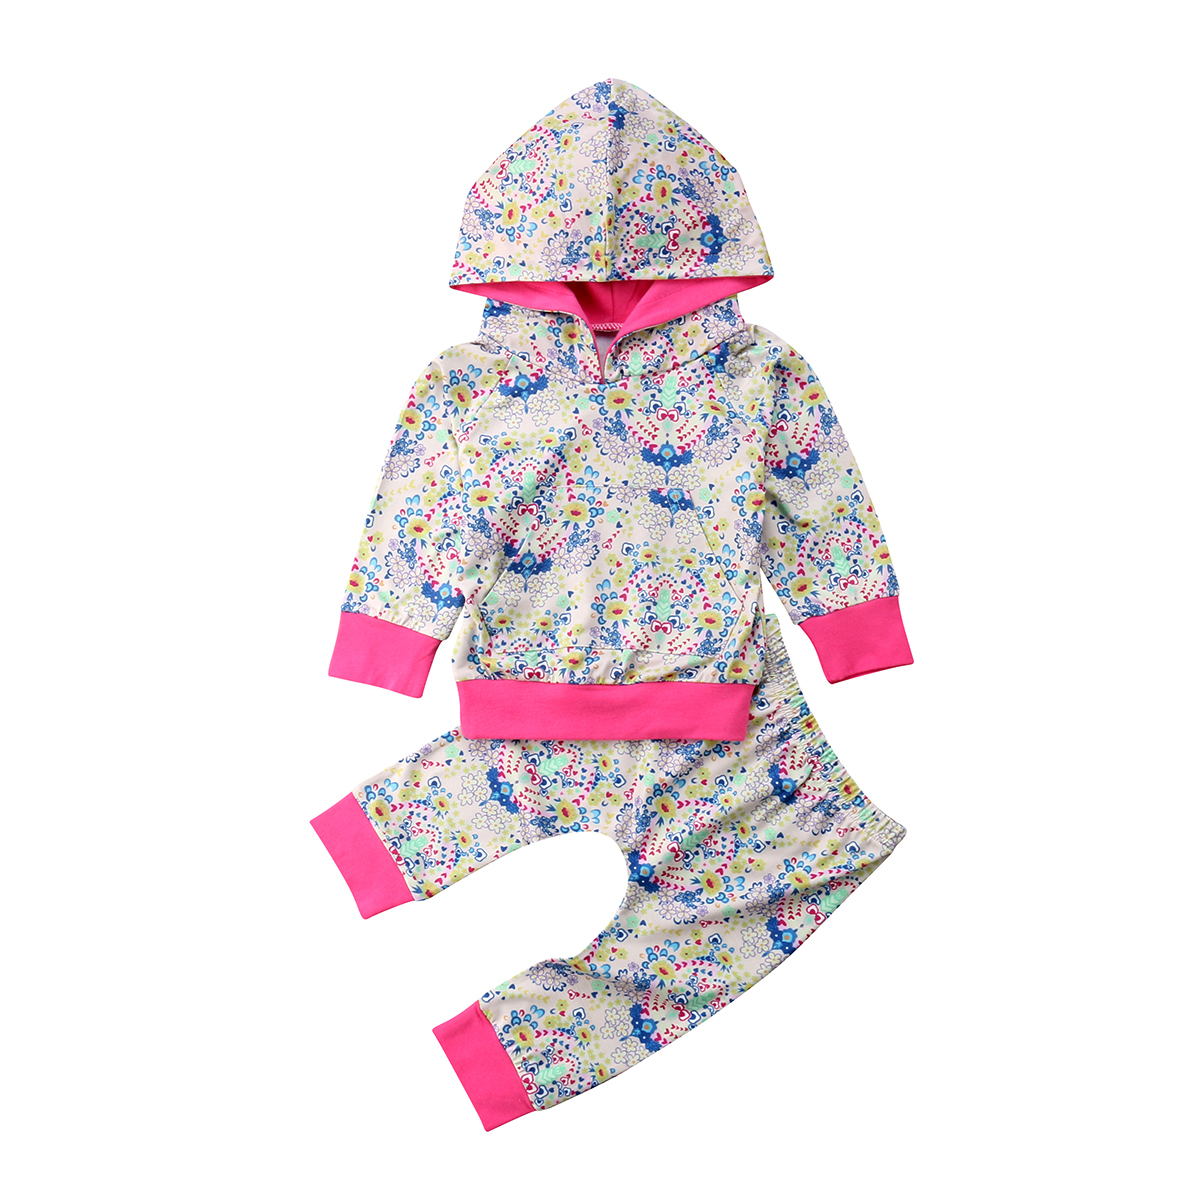 The Wild Casual 2pcs Newborn Kids Baby Hoodie T-shirt Tops Floral Pants Outfit Clothes Set Stylish Novel